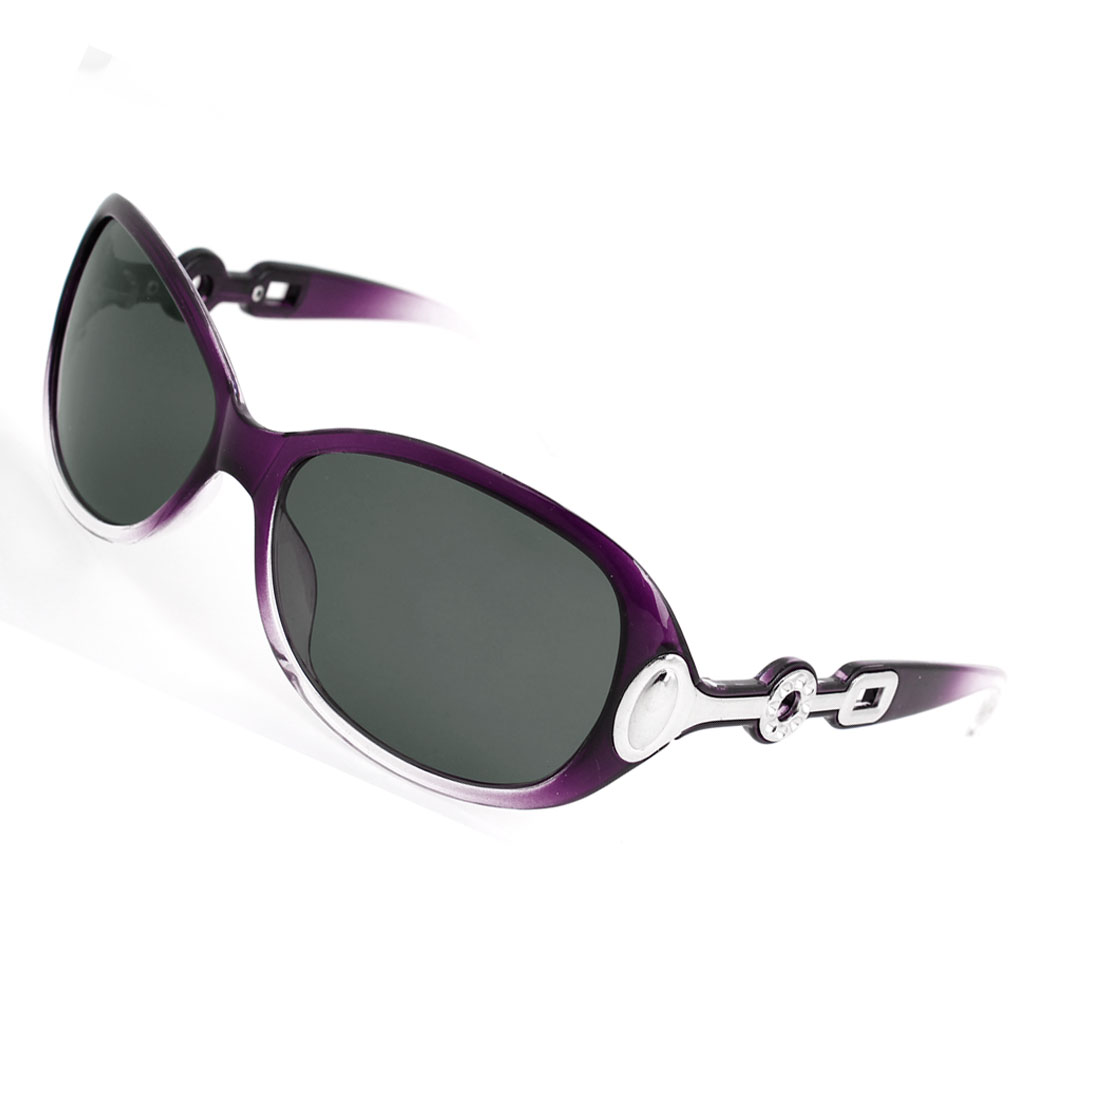 Ladies Purple Full Rim Gray Lens Driving Sports Polarized Sunglasses